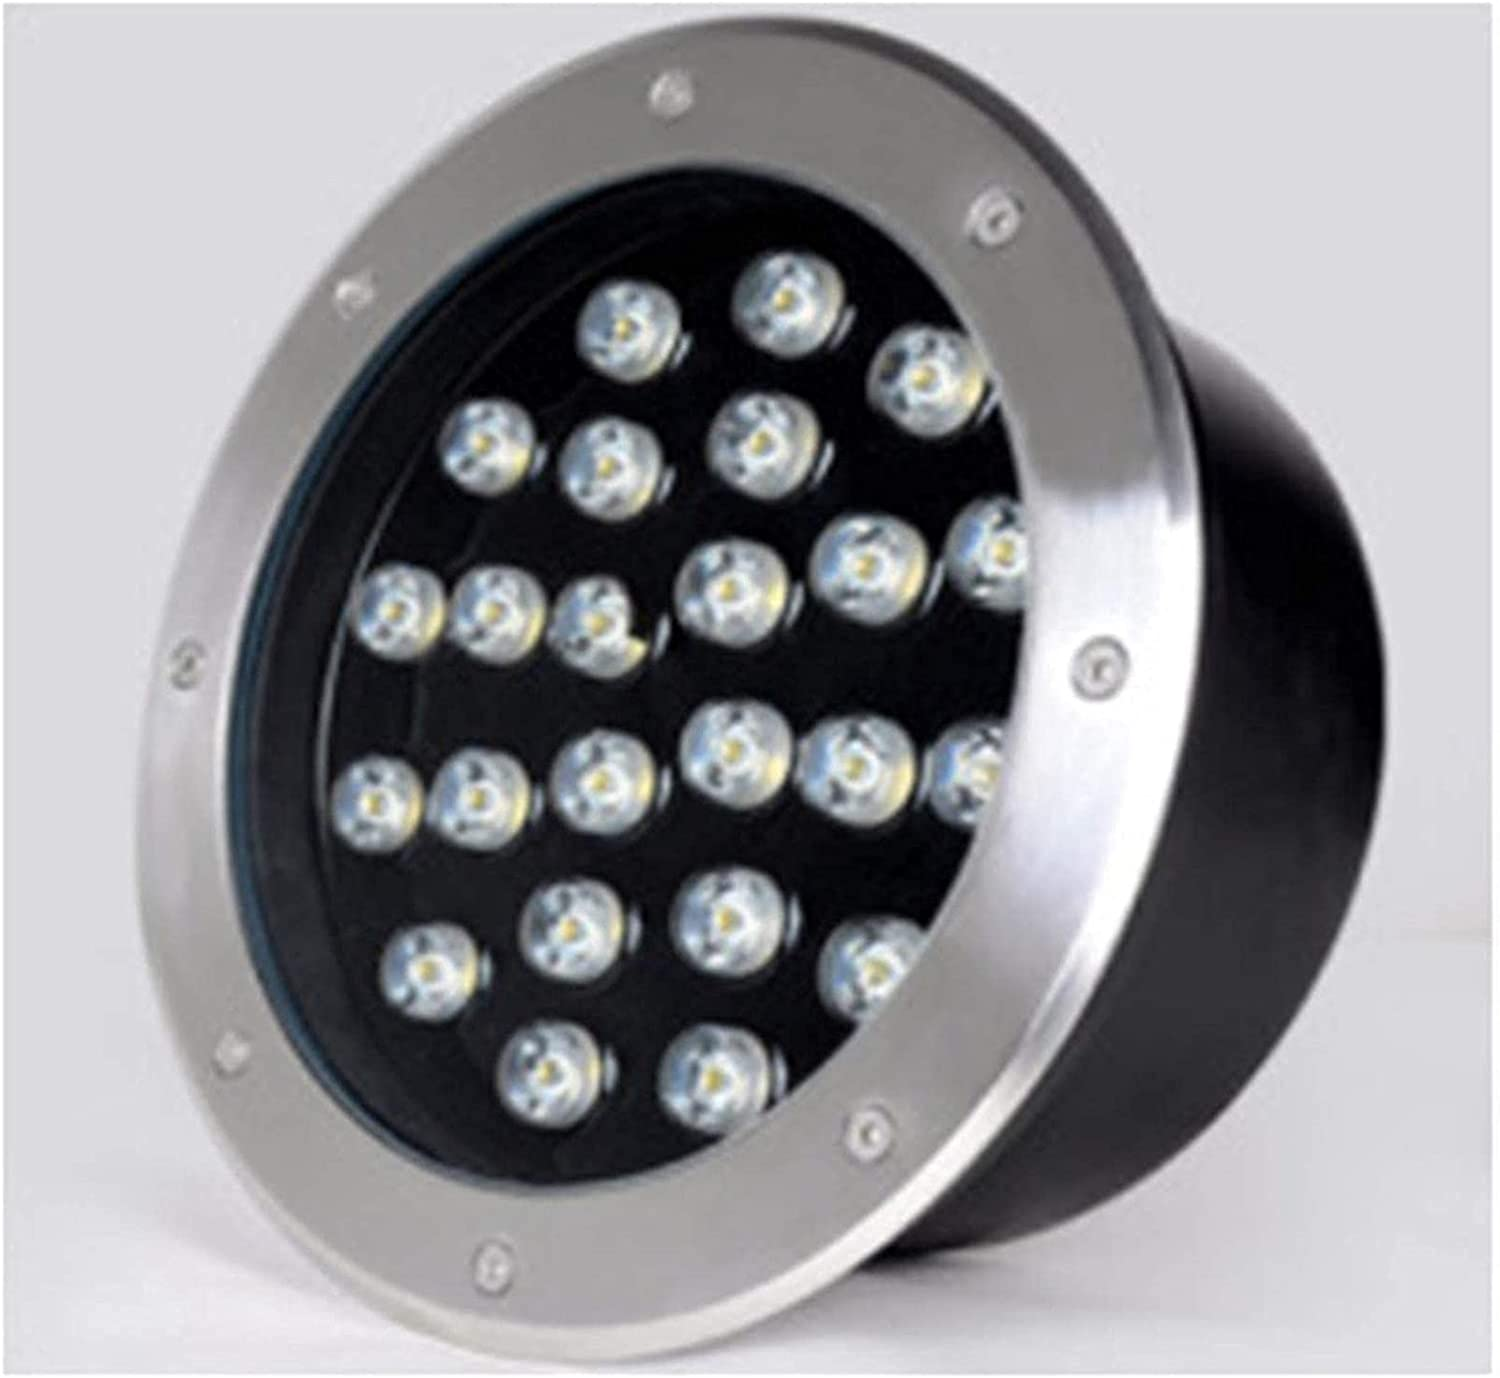 MWKLW Buried Max 65% Detroit Mall OFF Light Led Ground I Outdoor Embedded Spotlight